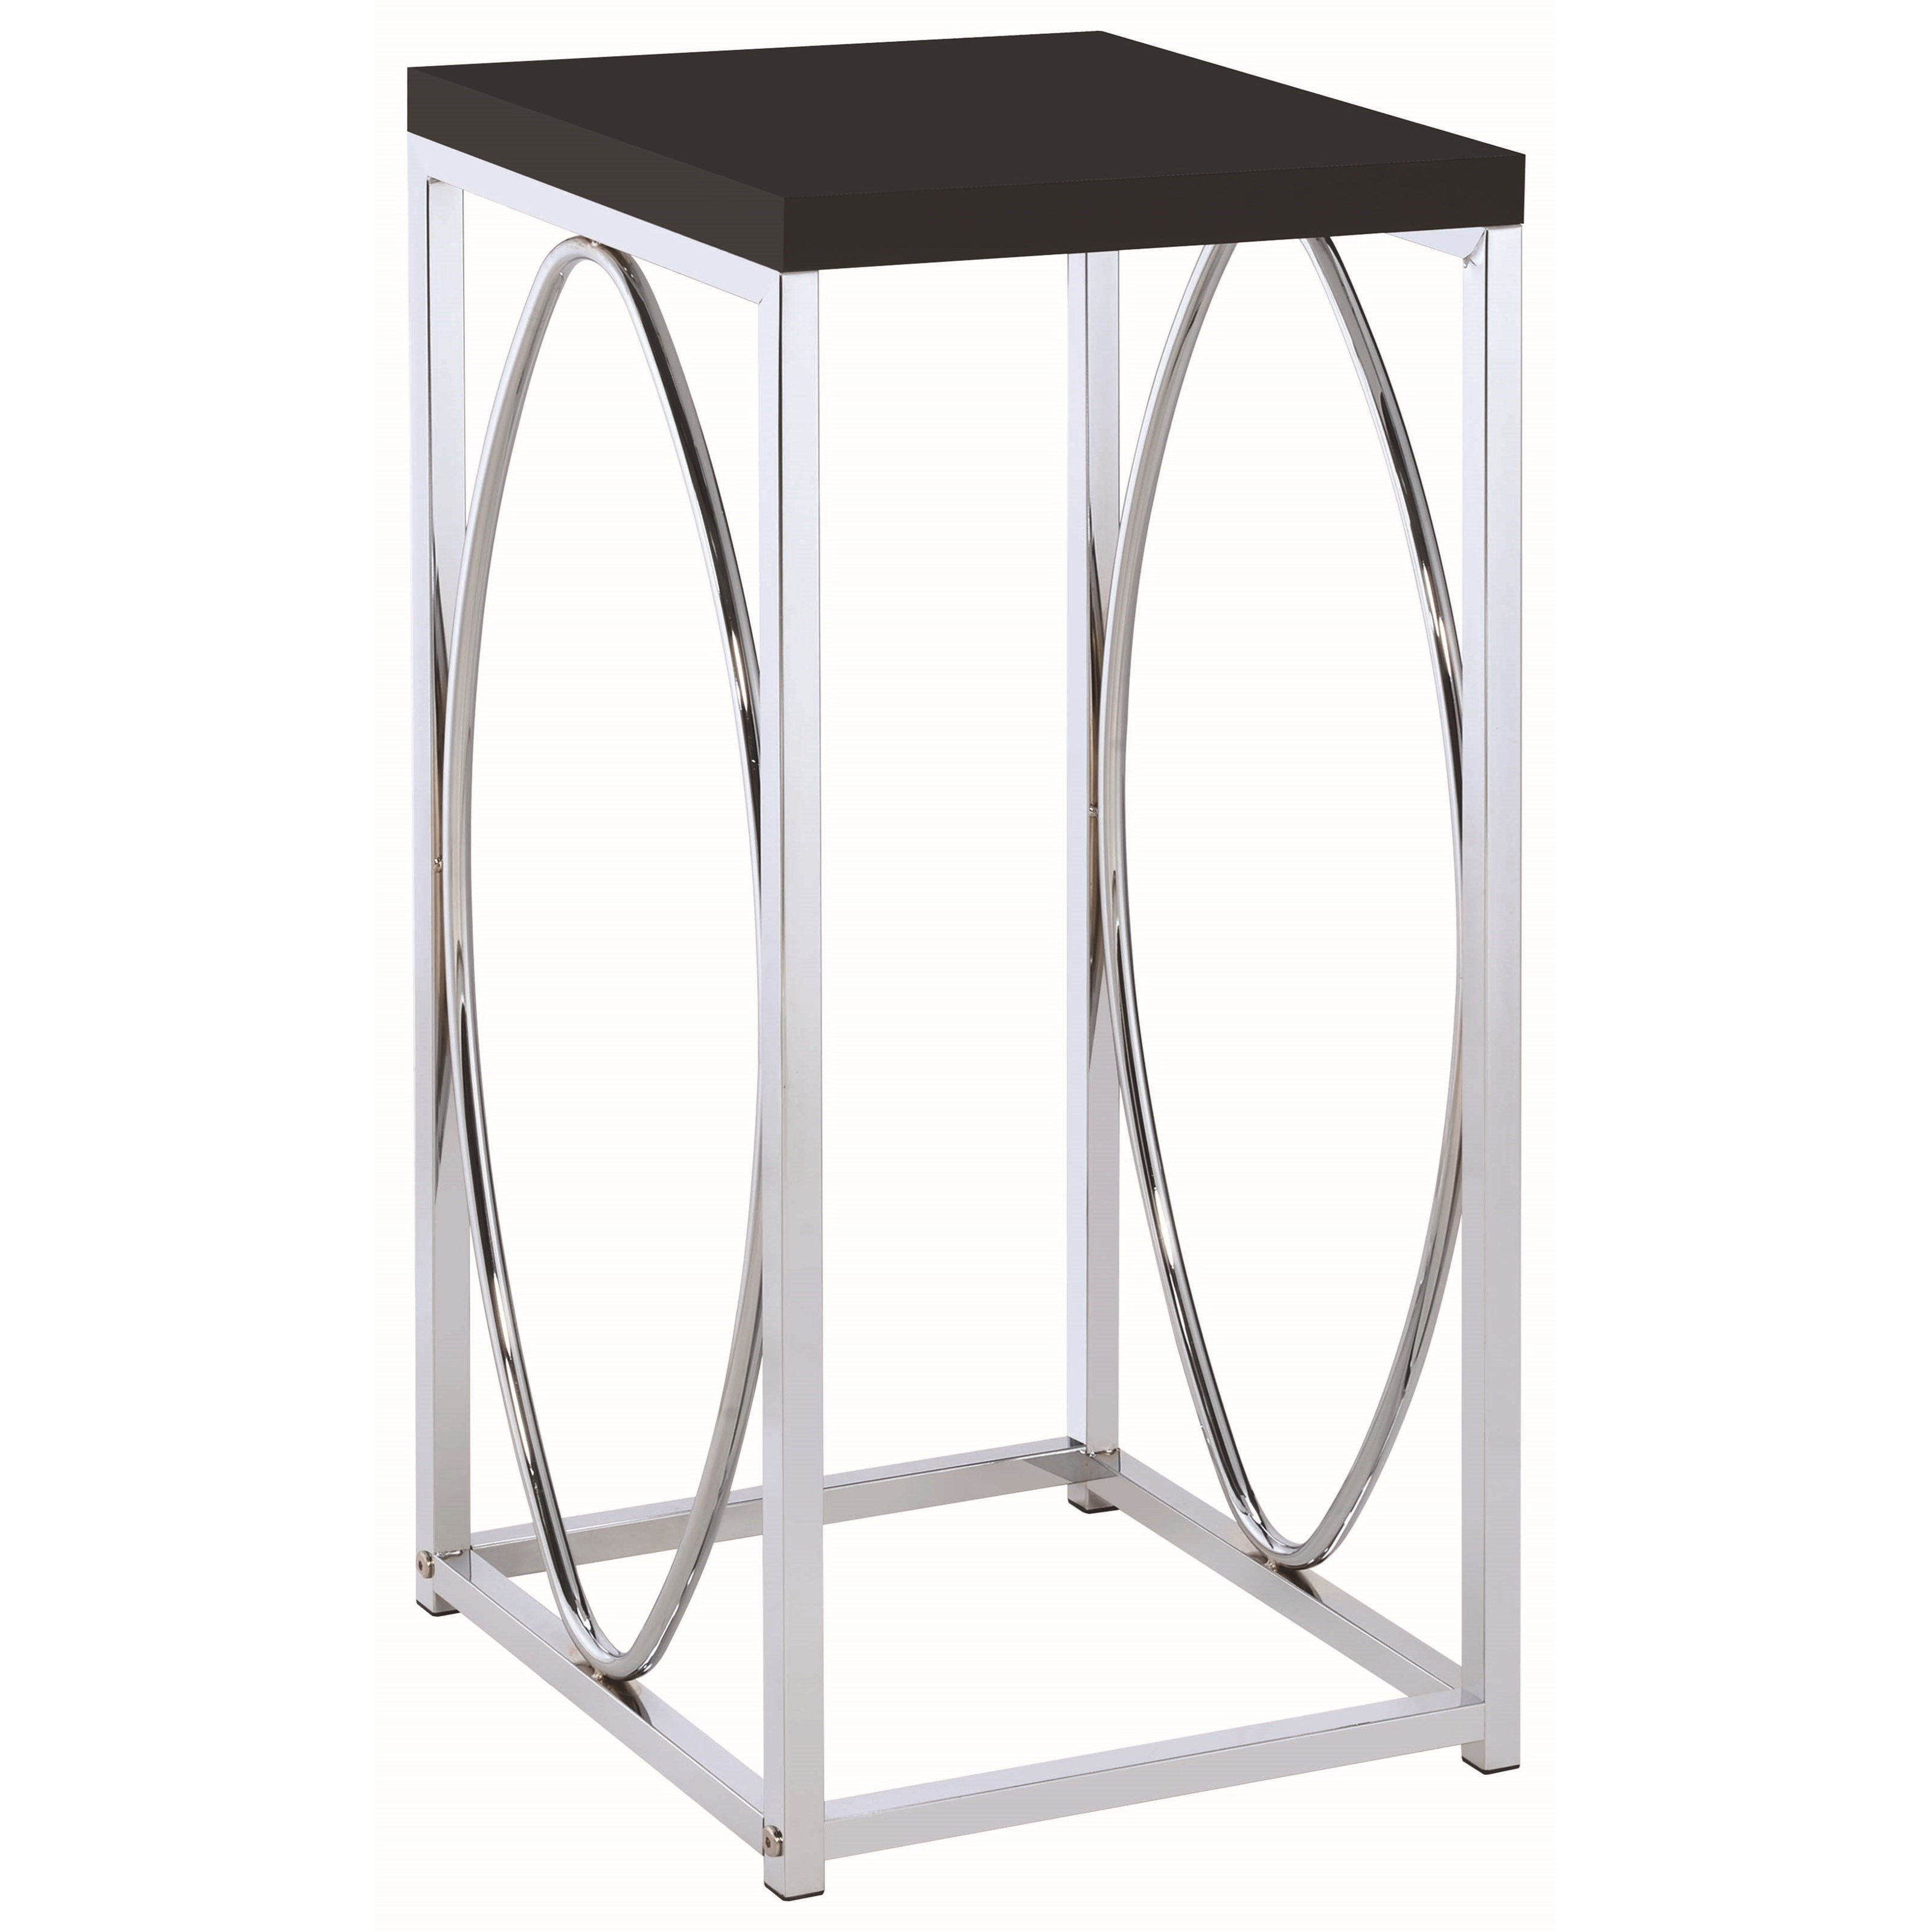 coaster accent tables contemporary table with black top products color coas elephant sculpture pier stools coffee and matching side ikea outdoor shelf orange lamp trestle kitchen